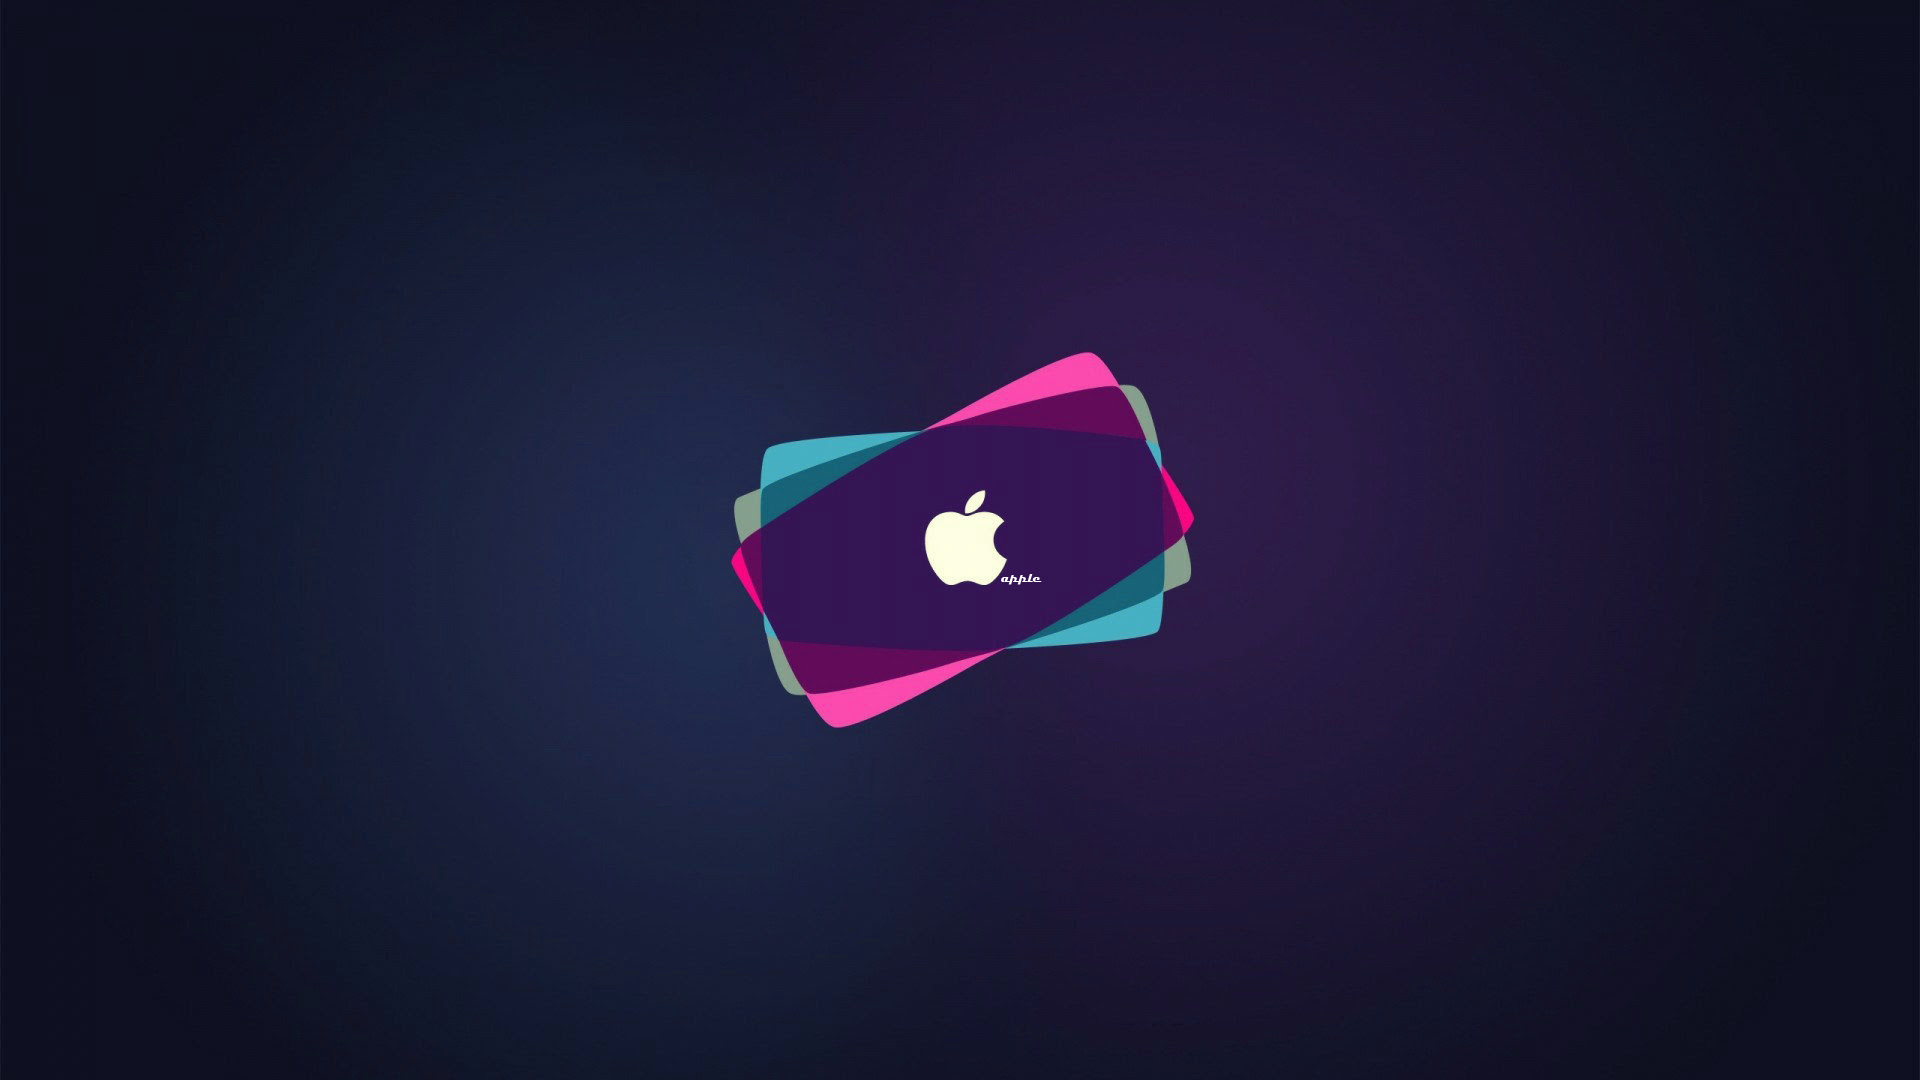 50 MAC Wallpapers/Backgrounds In HD For Free Download